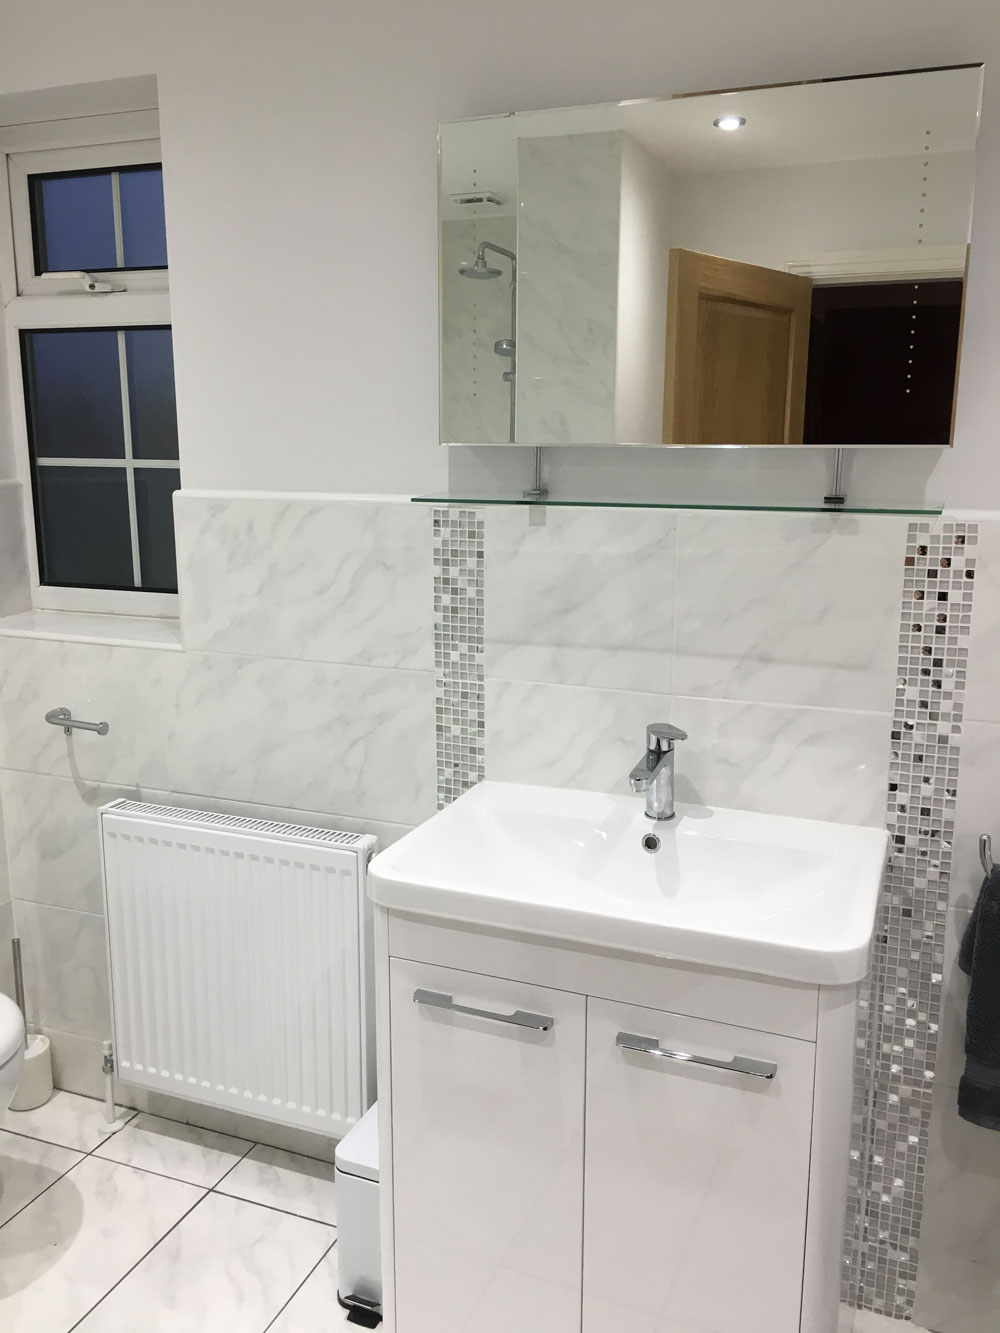 New bathroom in kings norton birmingham installation of for Bathroom design birmingham